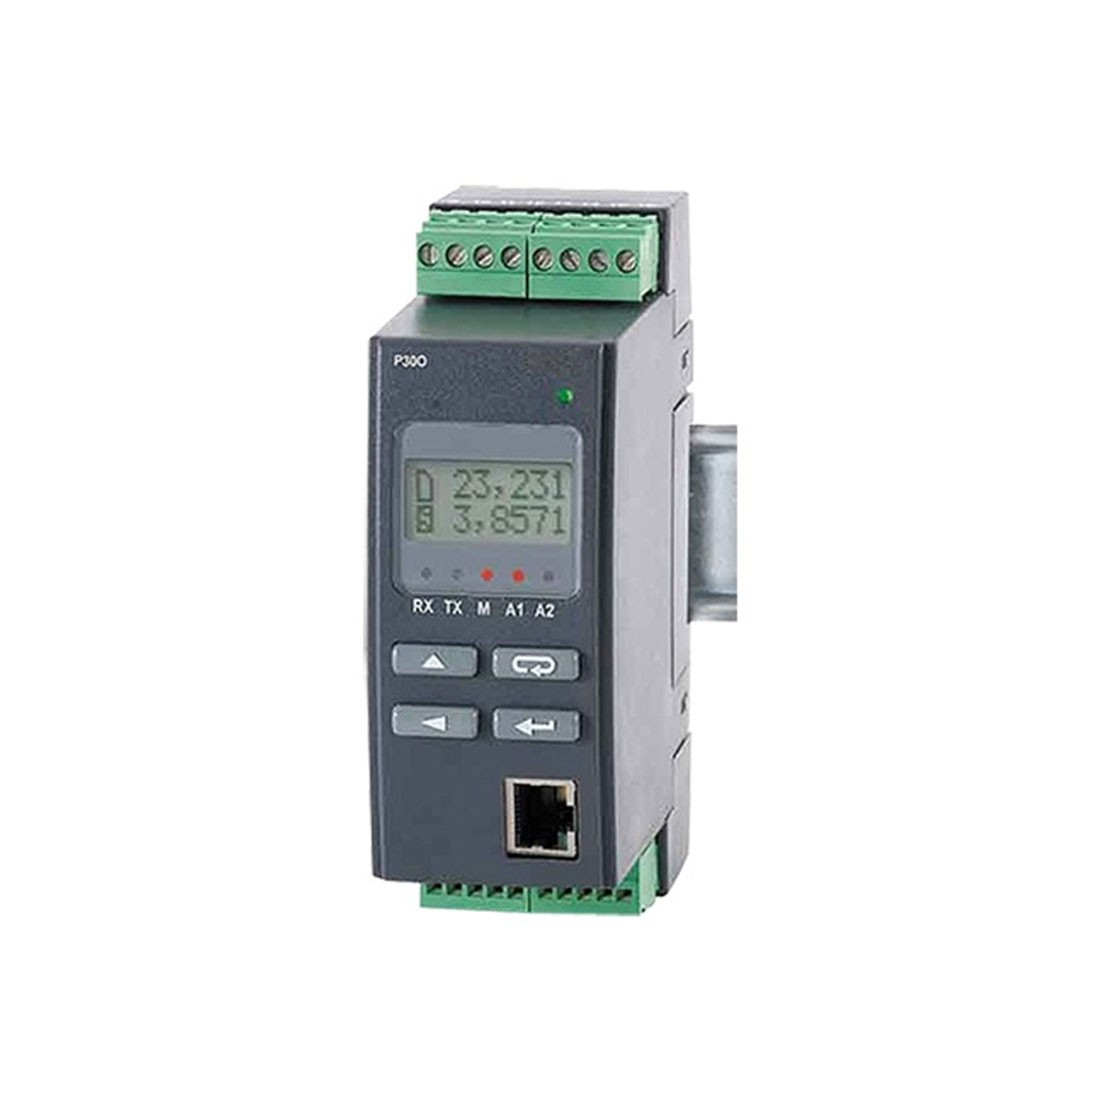 P30O Multifunction Transducer (Pulses, Frequency, Counter, and Time)